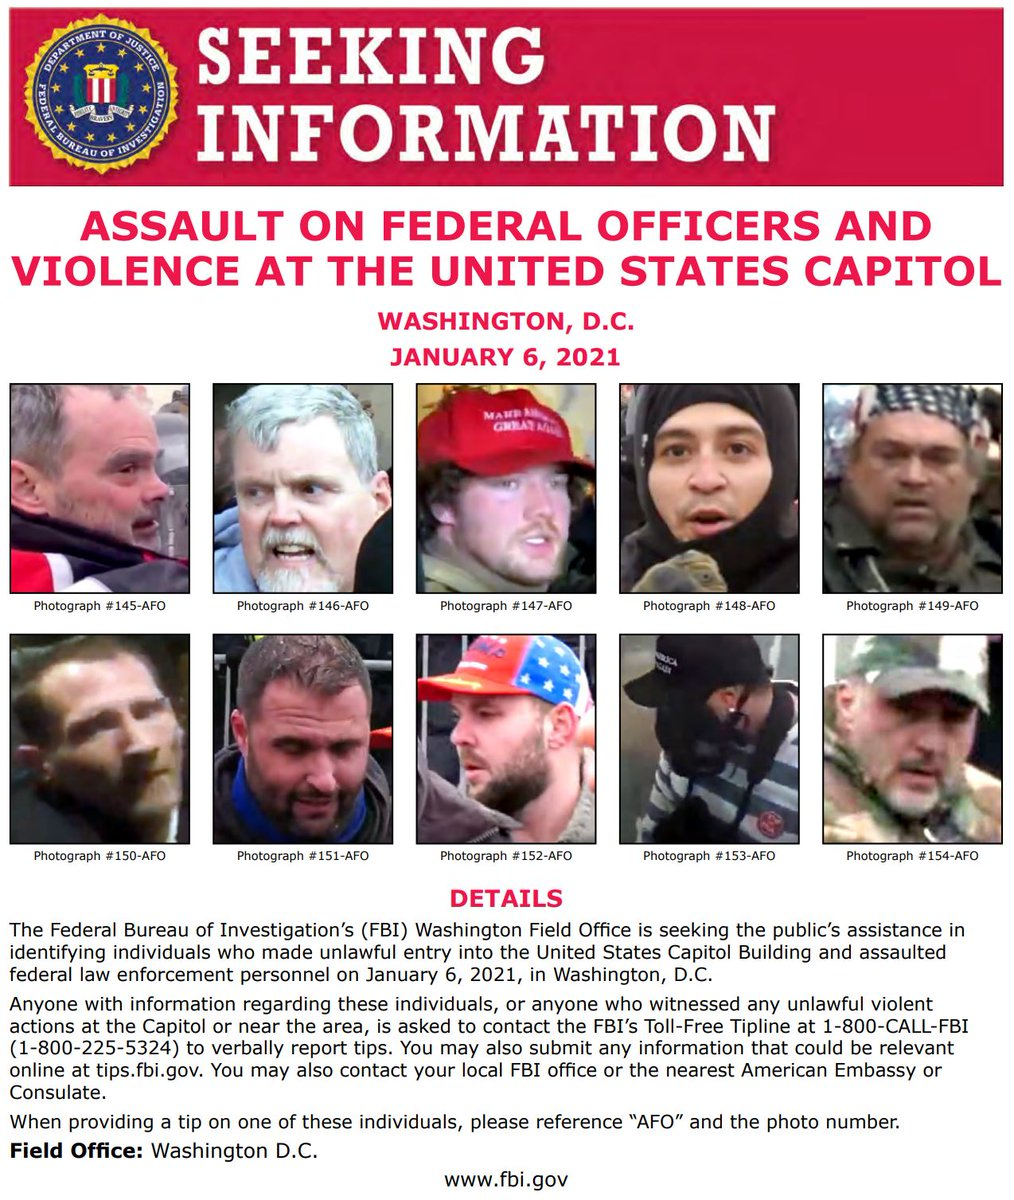 #FBIWFO is seeking the public's assistance in identifying individuals who made unlawful entry into the US Capitol & assaulted law enforcement on January 6th. If you have info, call 1800CALLFBI or submit to tips.fbi.gov. fbi.gov/wanted/seeking…